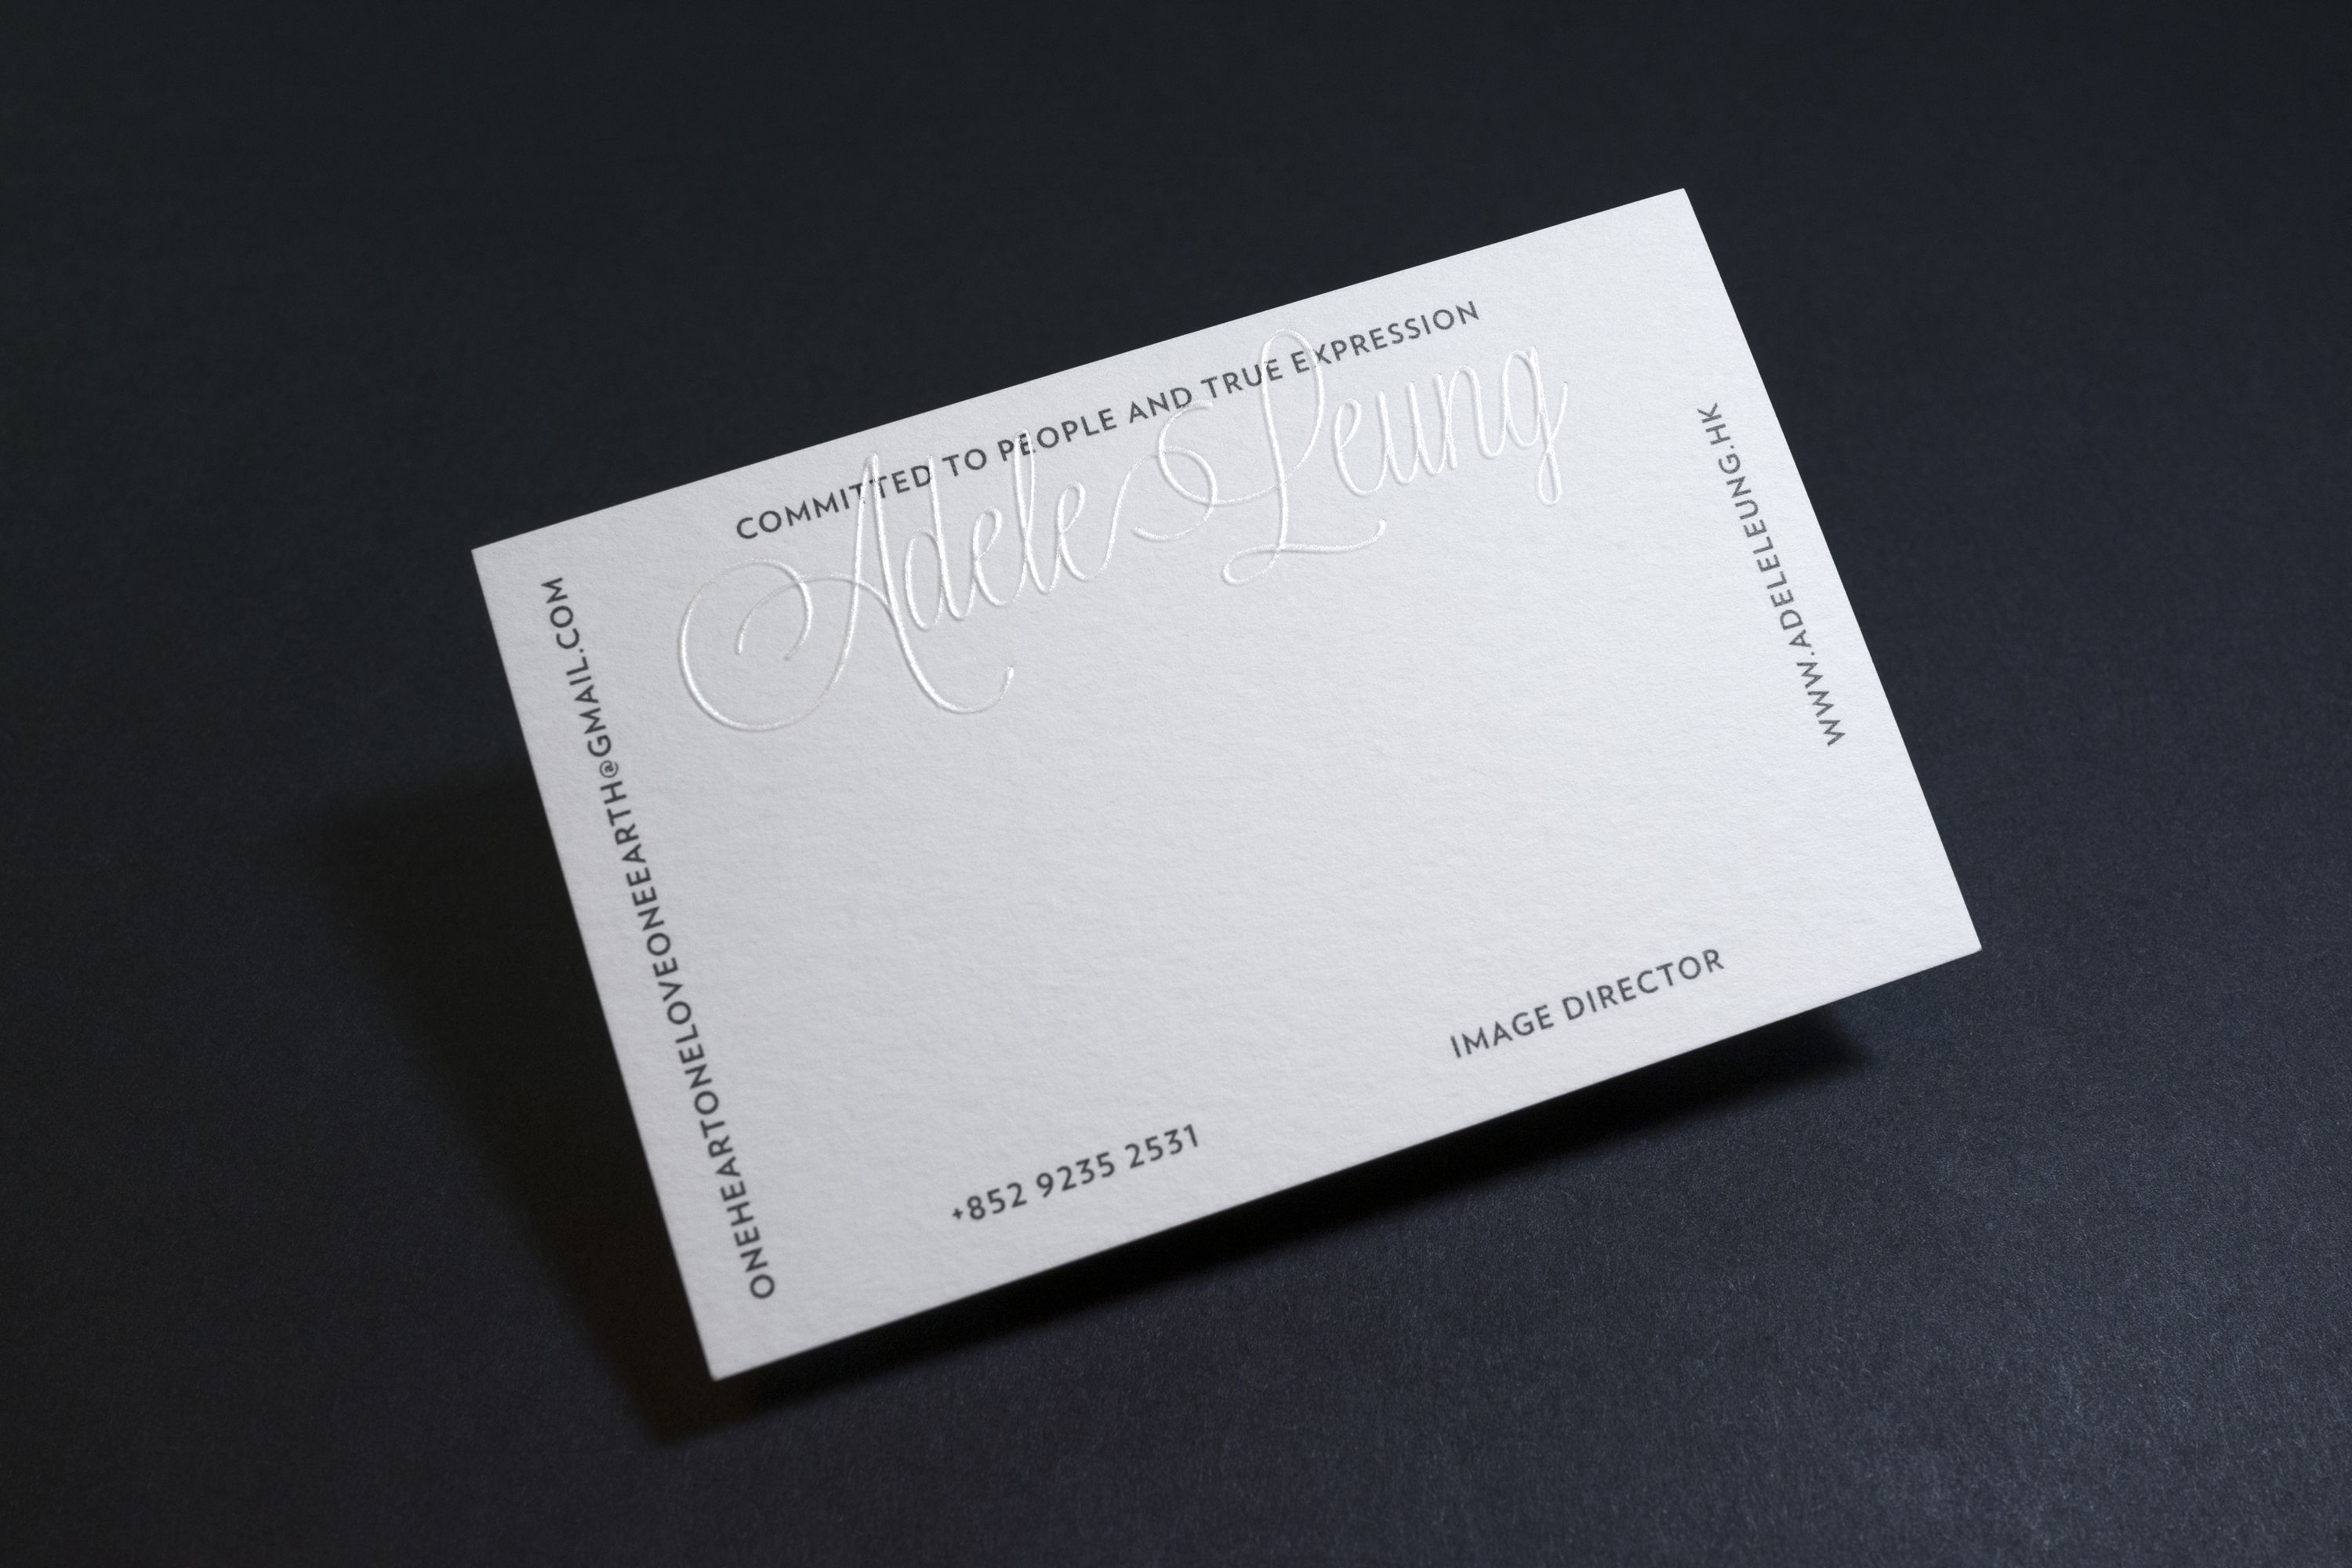 Adele leung blind embossed business card designed by studiomuch adele leung blind embossed business card designed by studiomuch reheart Gallery